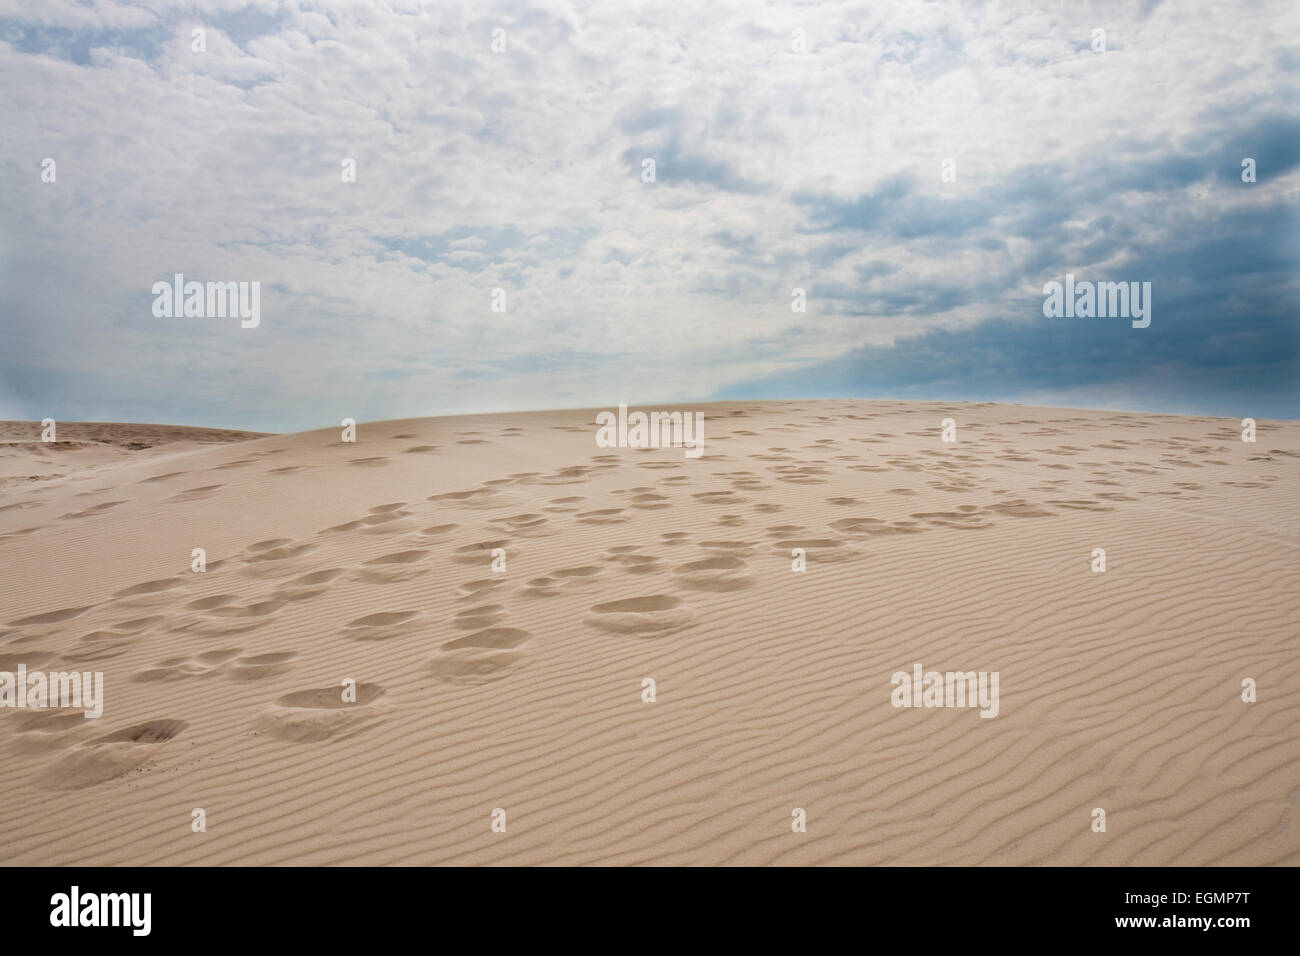 Footsteps in the sand at Raabjerg Mile near the Skaw, Denmark - Stock Image